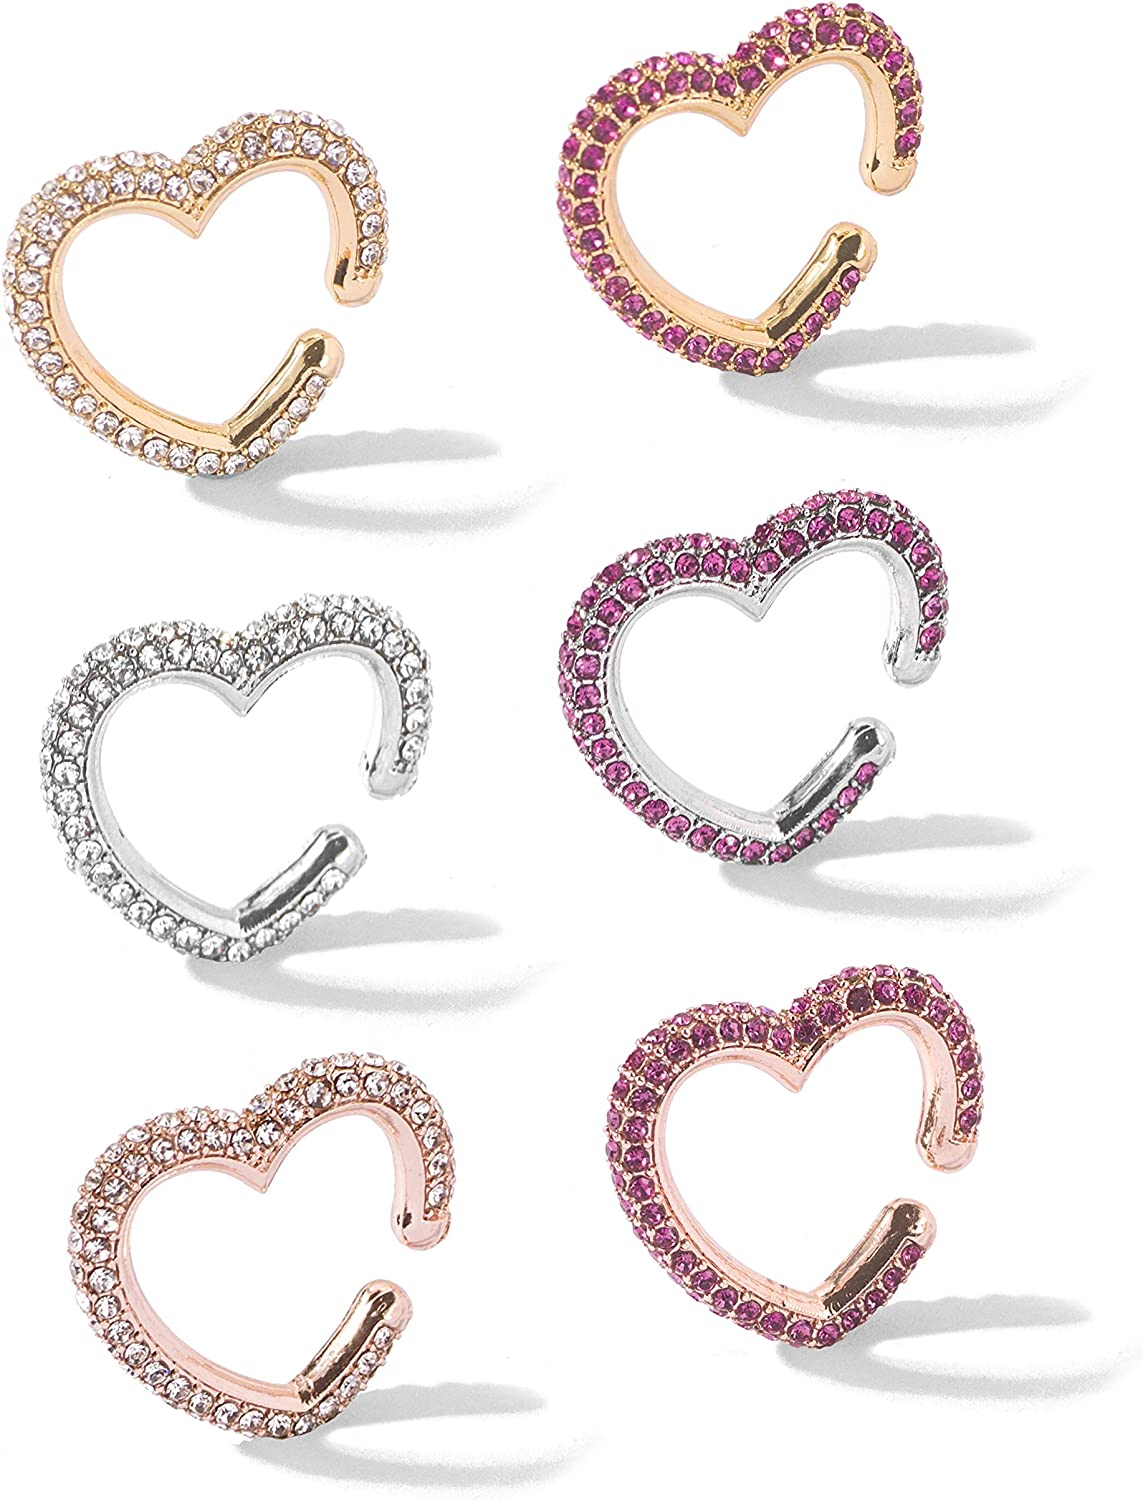 6Pcs Set Colorful Crystal Ear New popularity Clip Non-Piercing Hoop On Earrings Over item handling